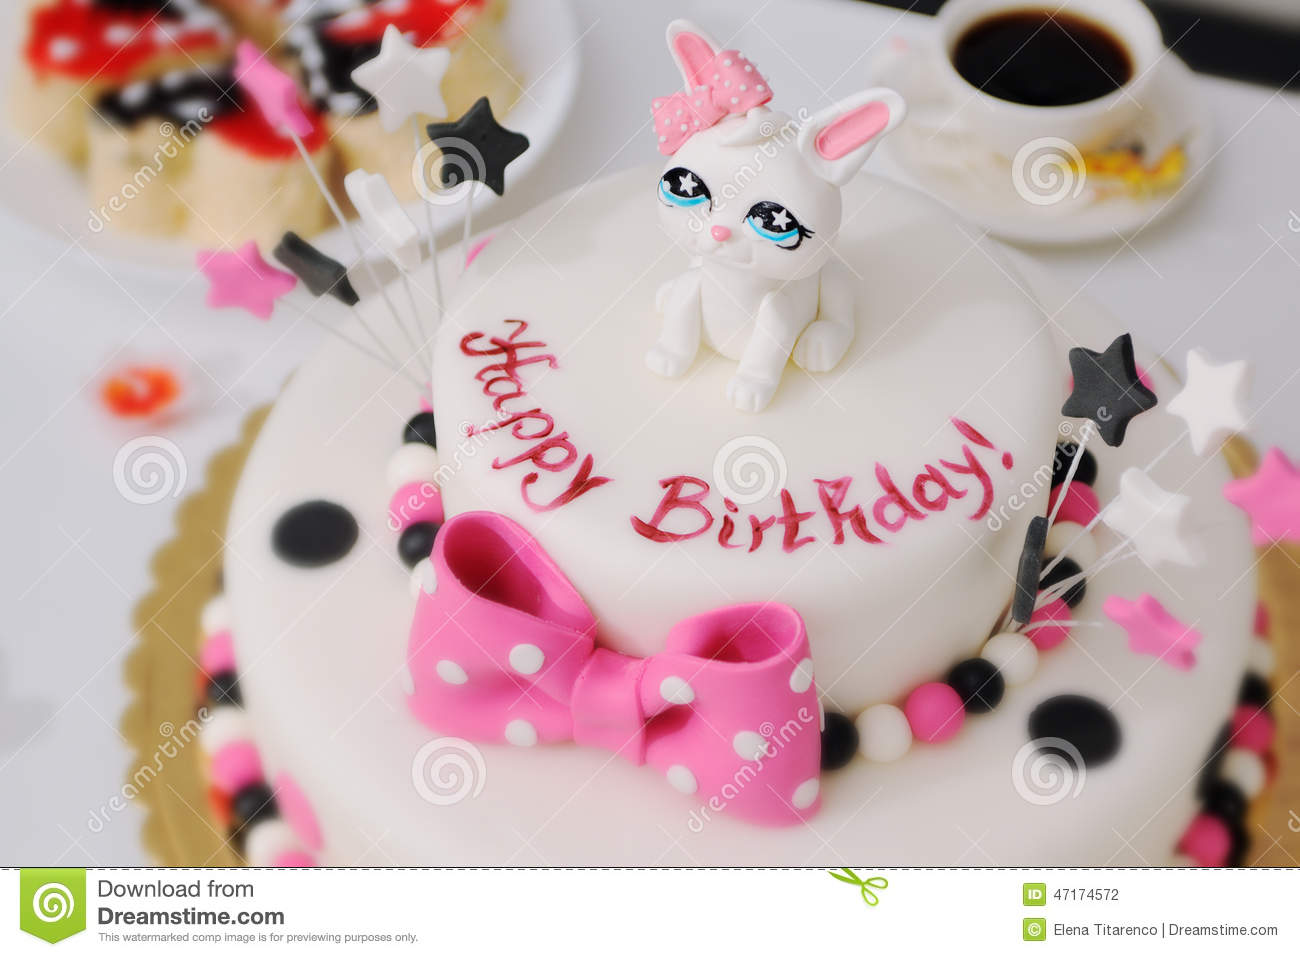 Happy Birthday Cake Stock Photo Image Of Decorated Party 47174572